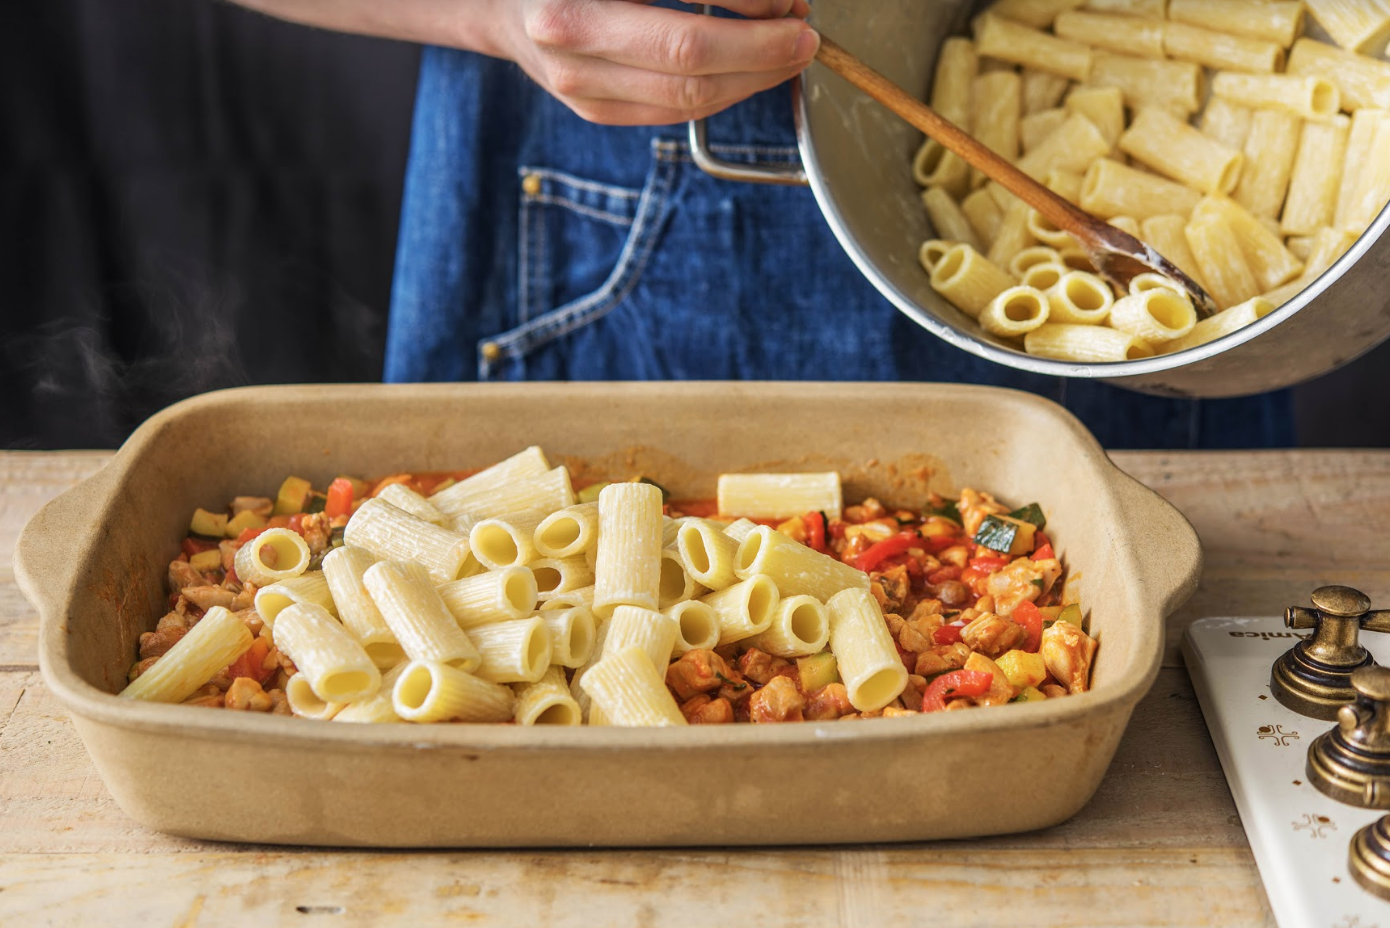 How to Reheat Pasta With Sauce